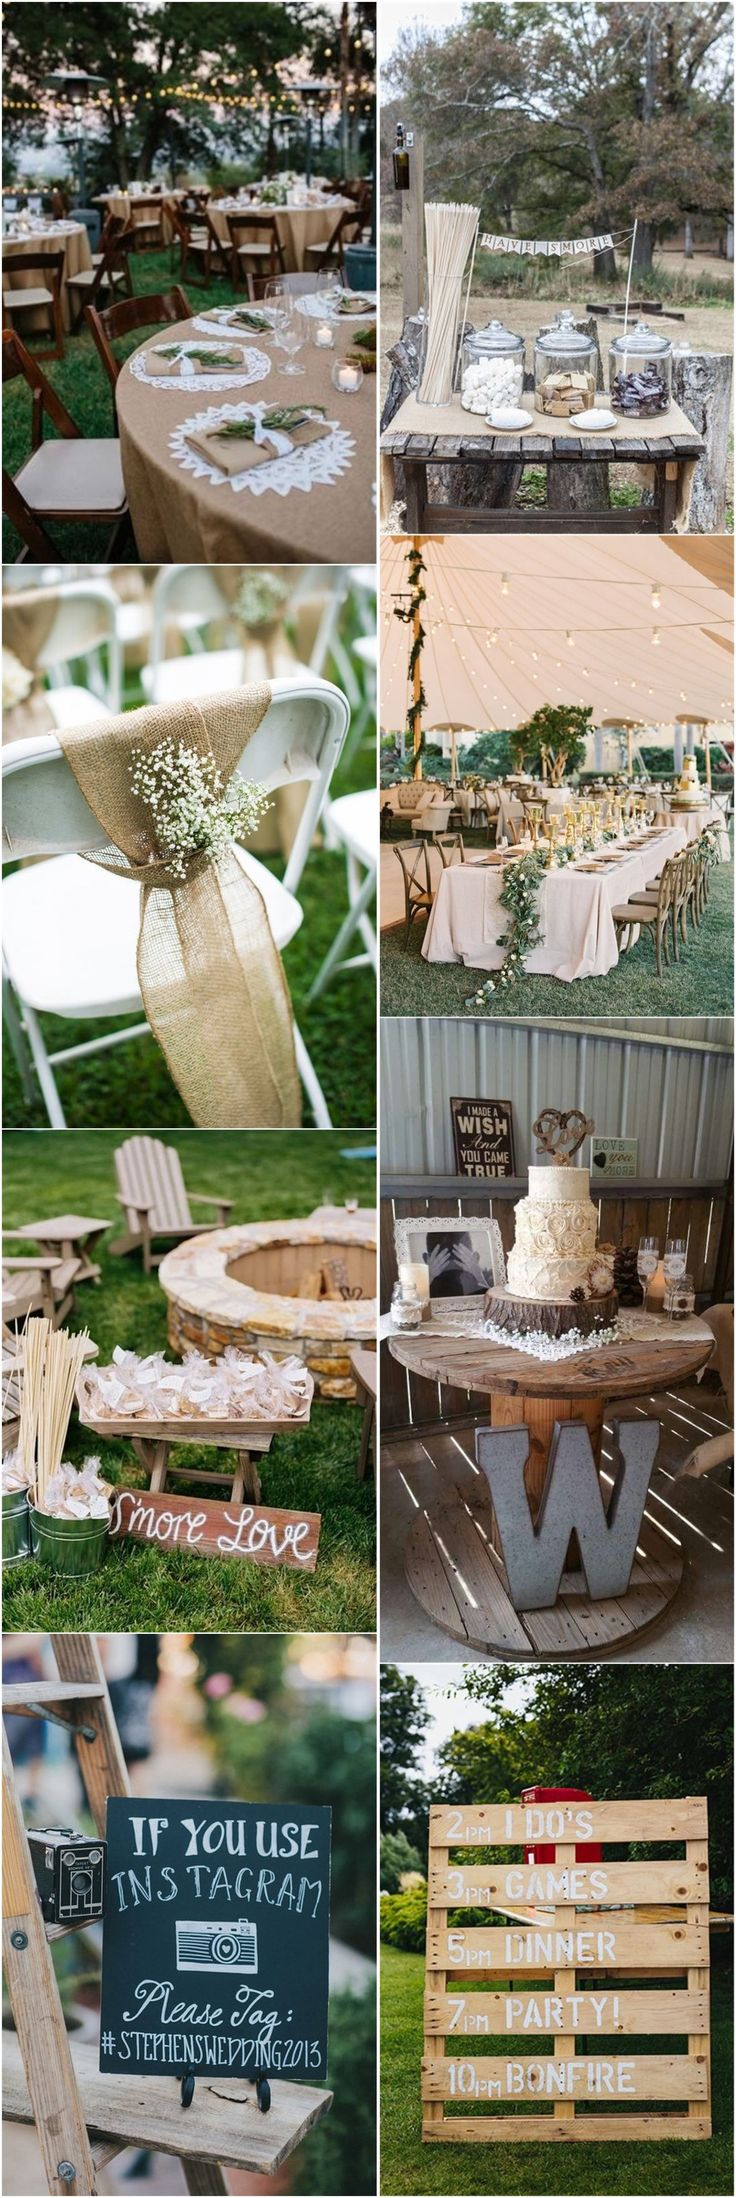 Backyard Wedding Decoration Ideas On A Budget Of 802 Best Rustic Weddings Images On Pinterest Outdoor